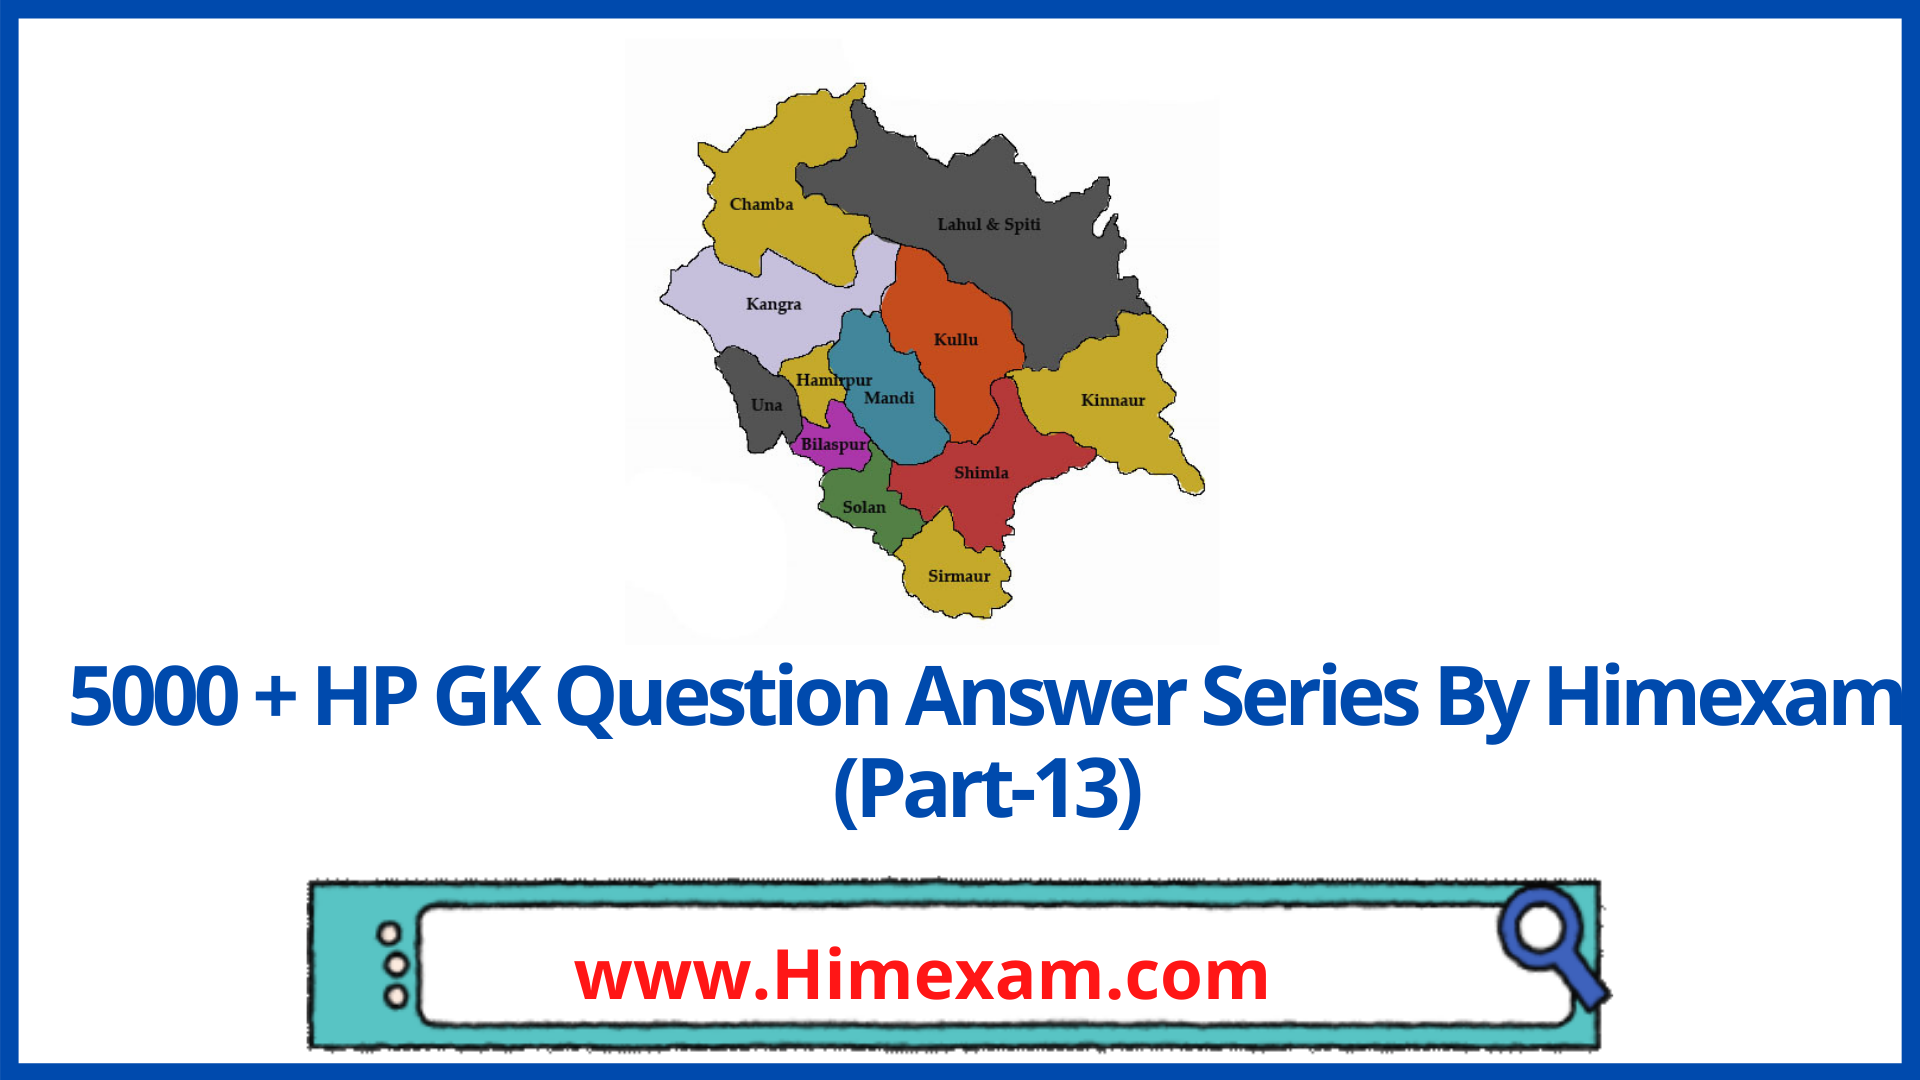 5000 + HP GK Question Answer Series By Himexam (Part-13)